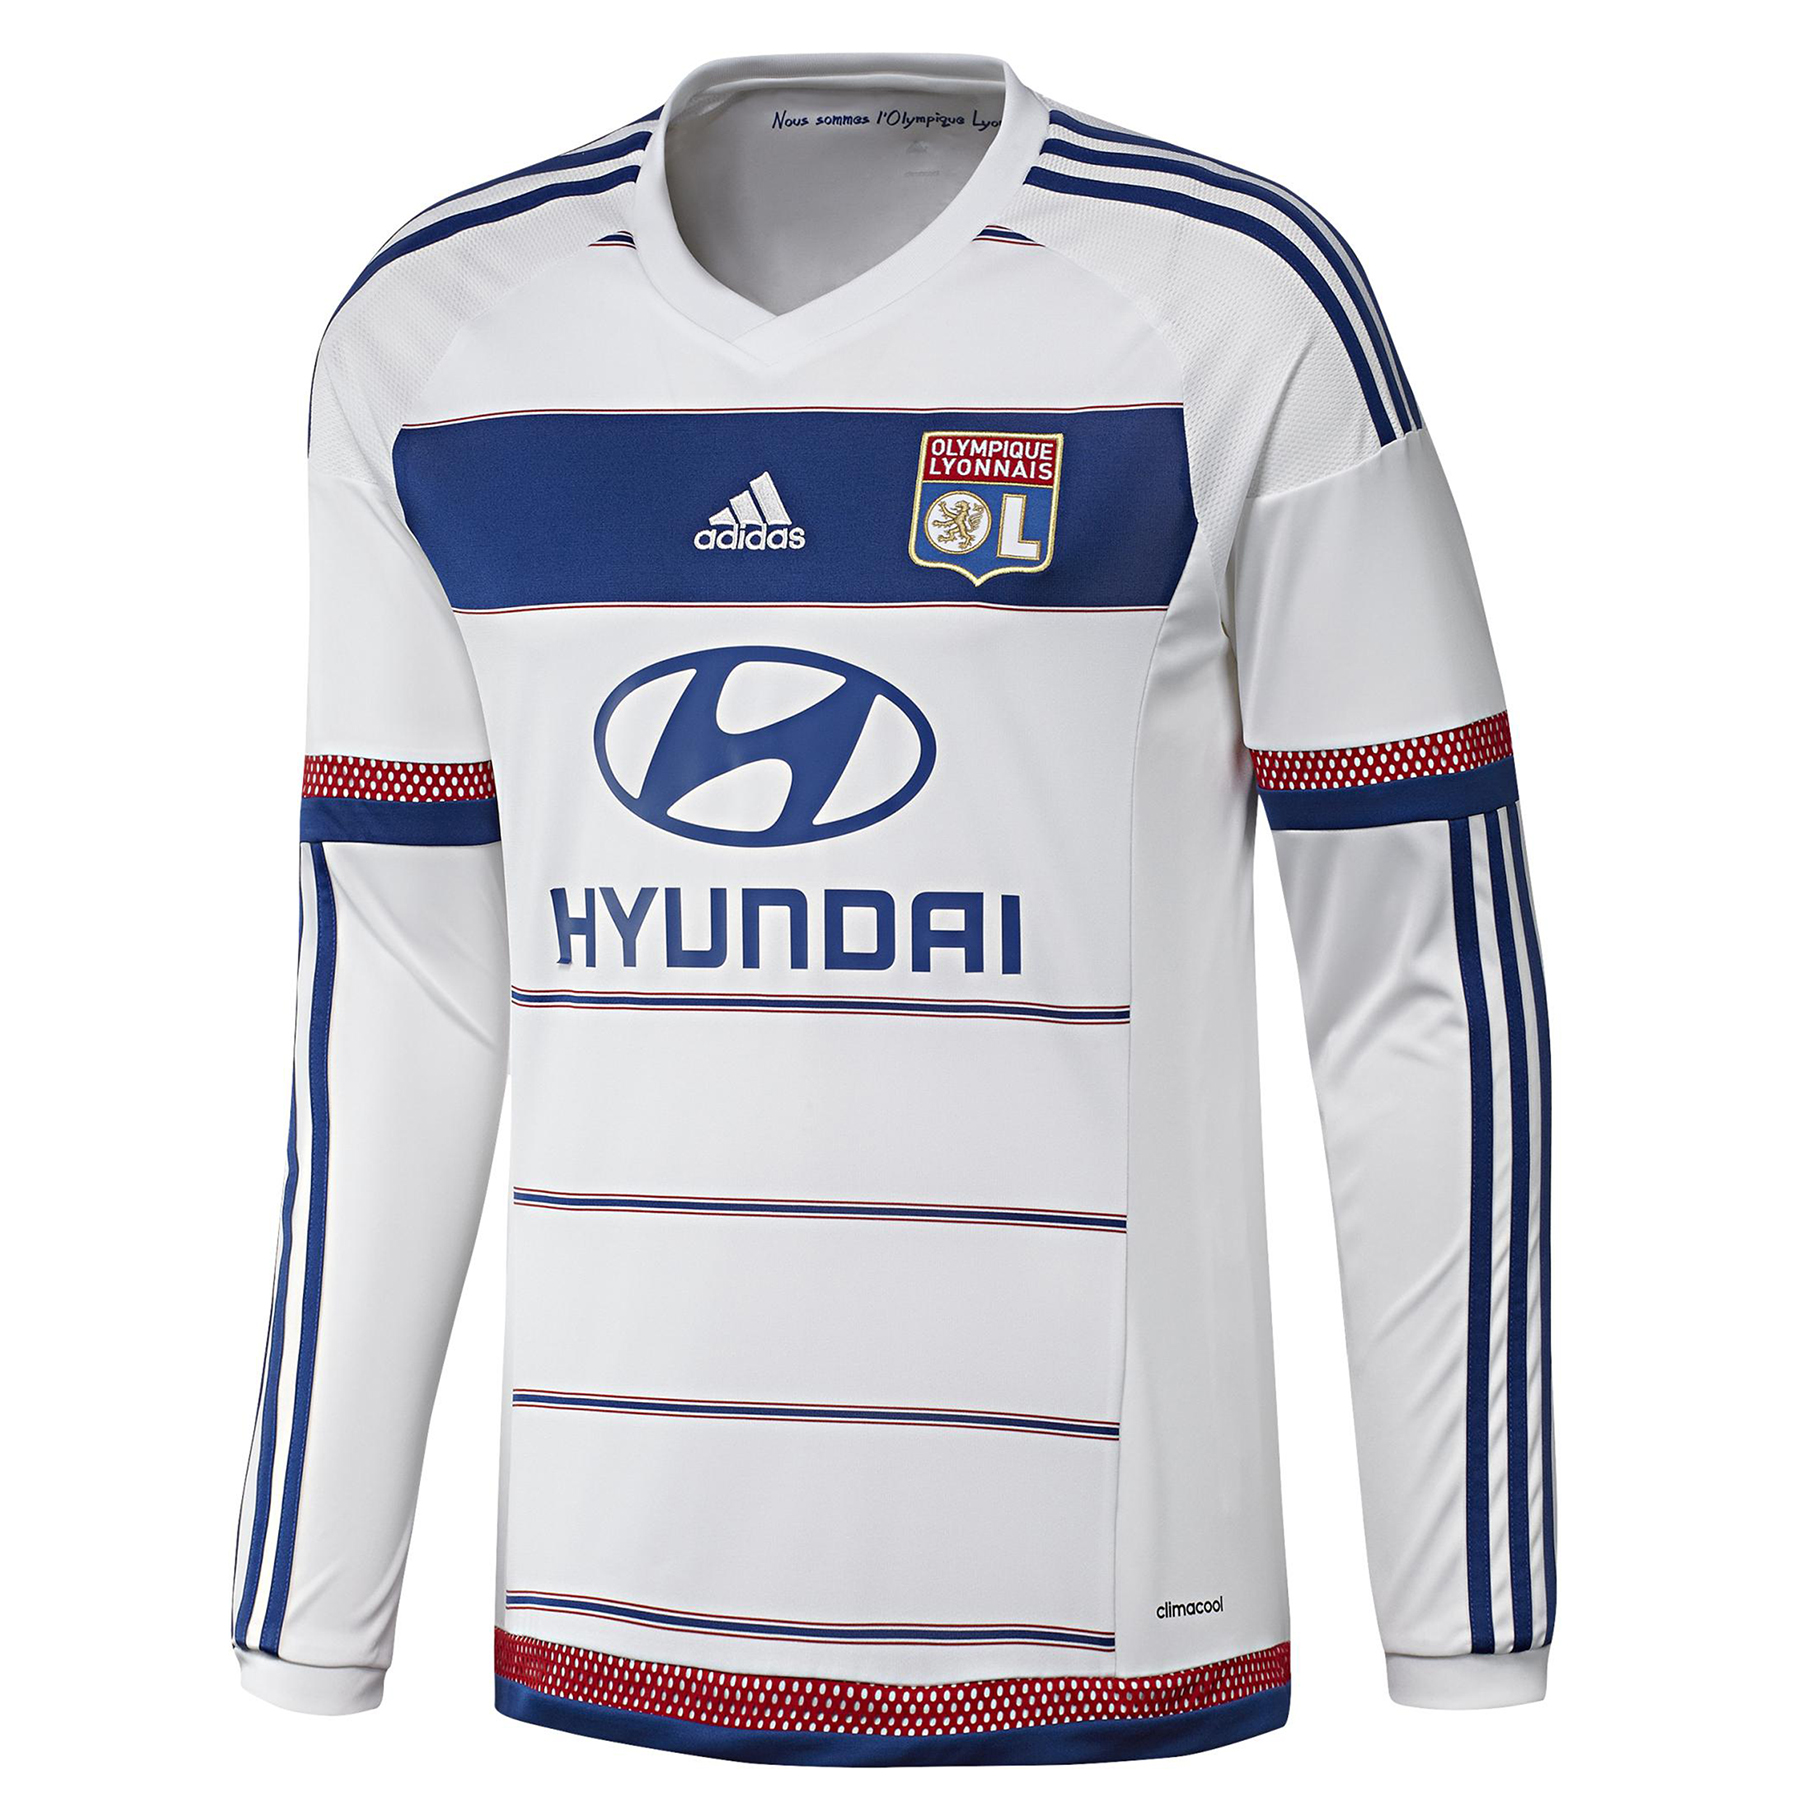 Olympique Lyon Home Shirt 201516  Long Sleeve White